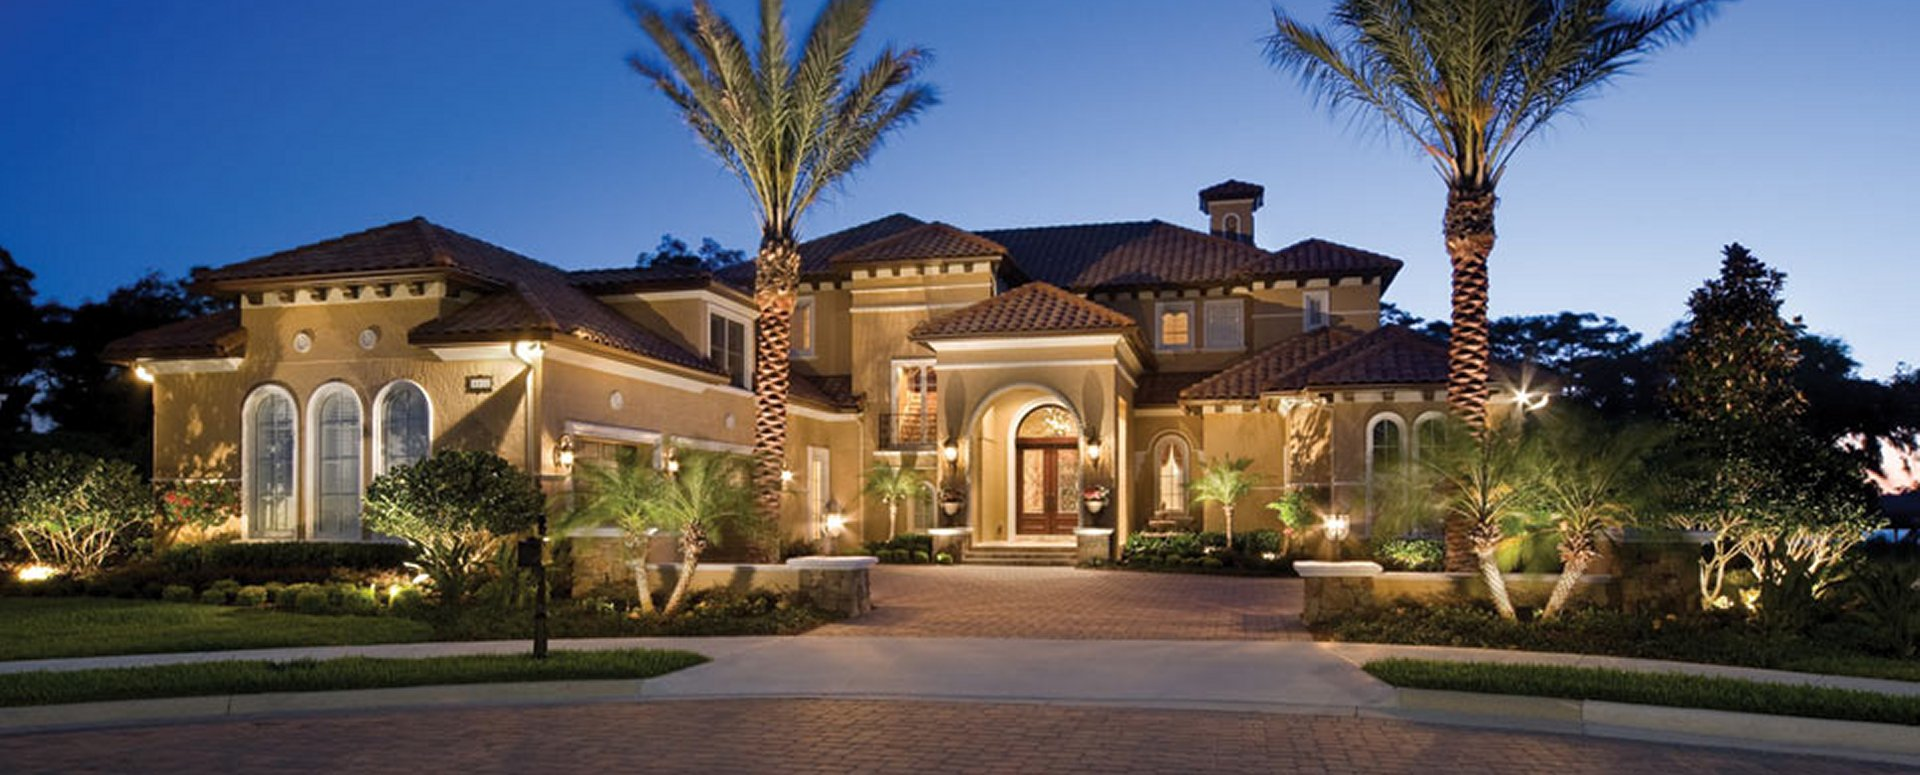 Superb CUSTOM BUILT HOMES Awesome Design